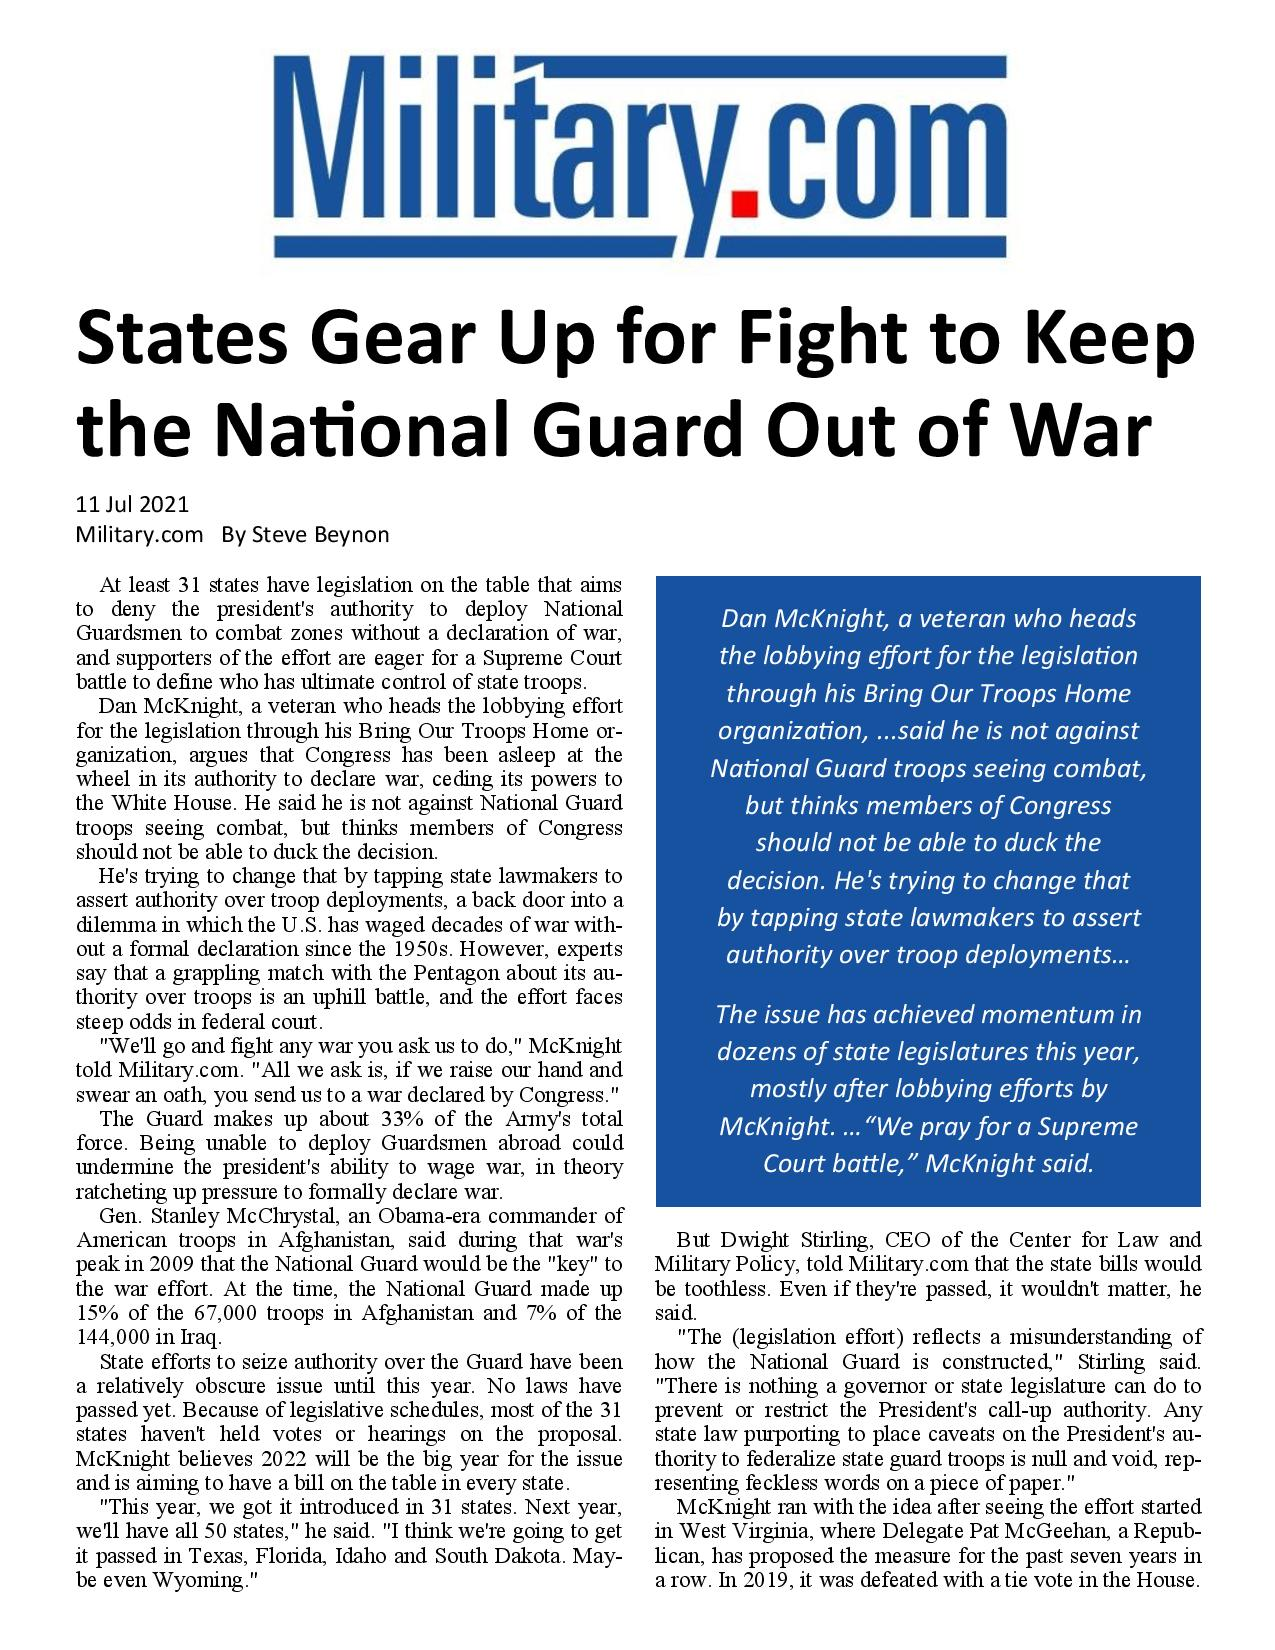 States Gear Up for Fight to Keep the National Guard Out of War